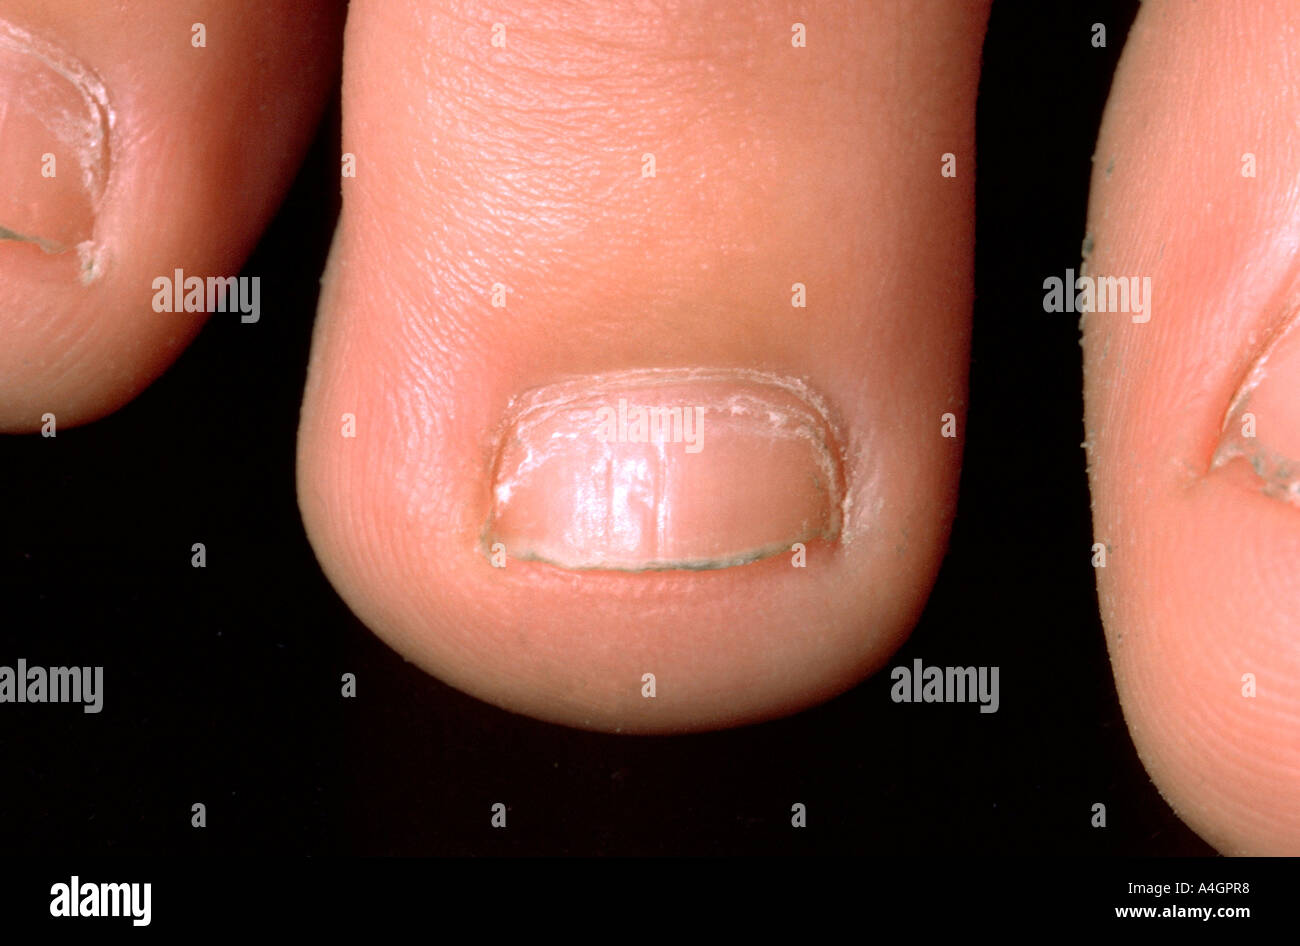 Nail pitting Stock Photo: 6312183 - Alamy